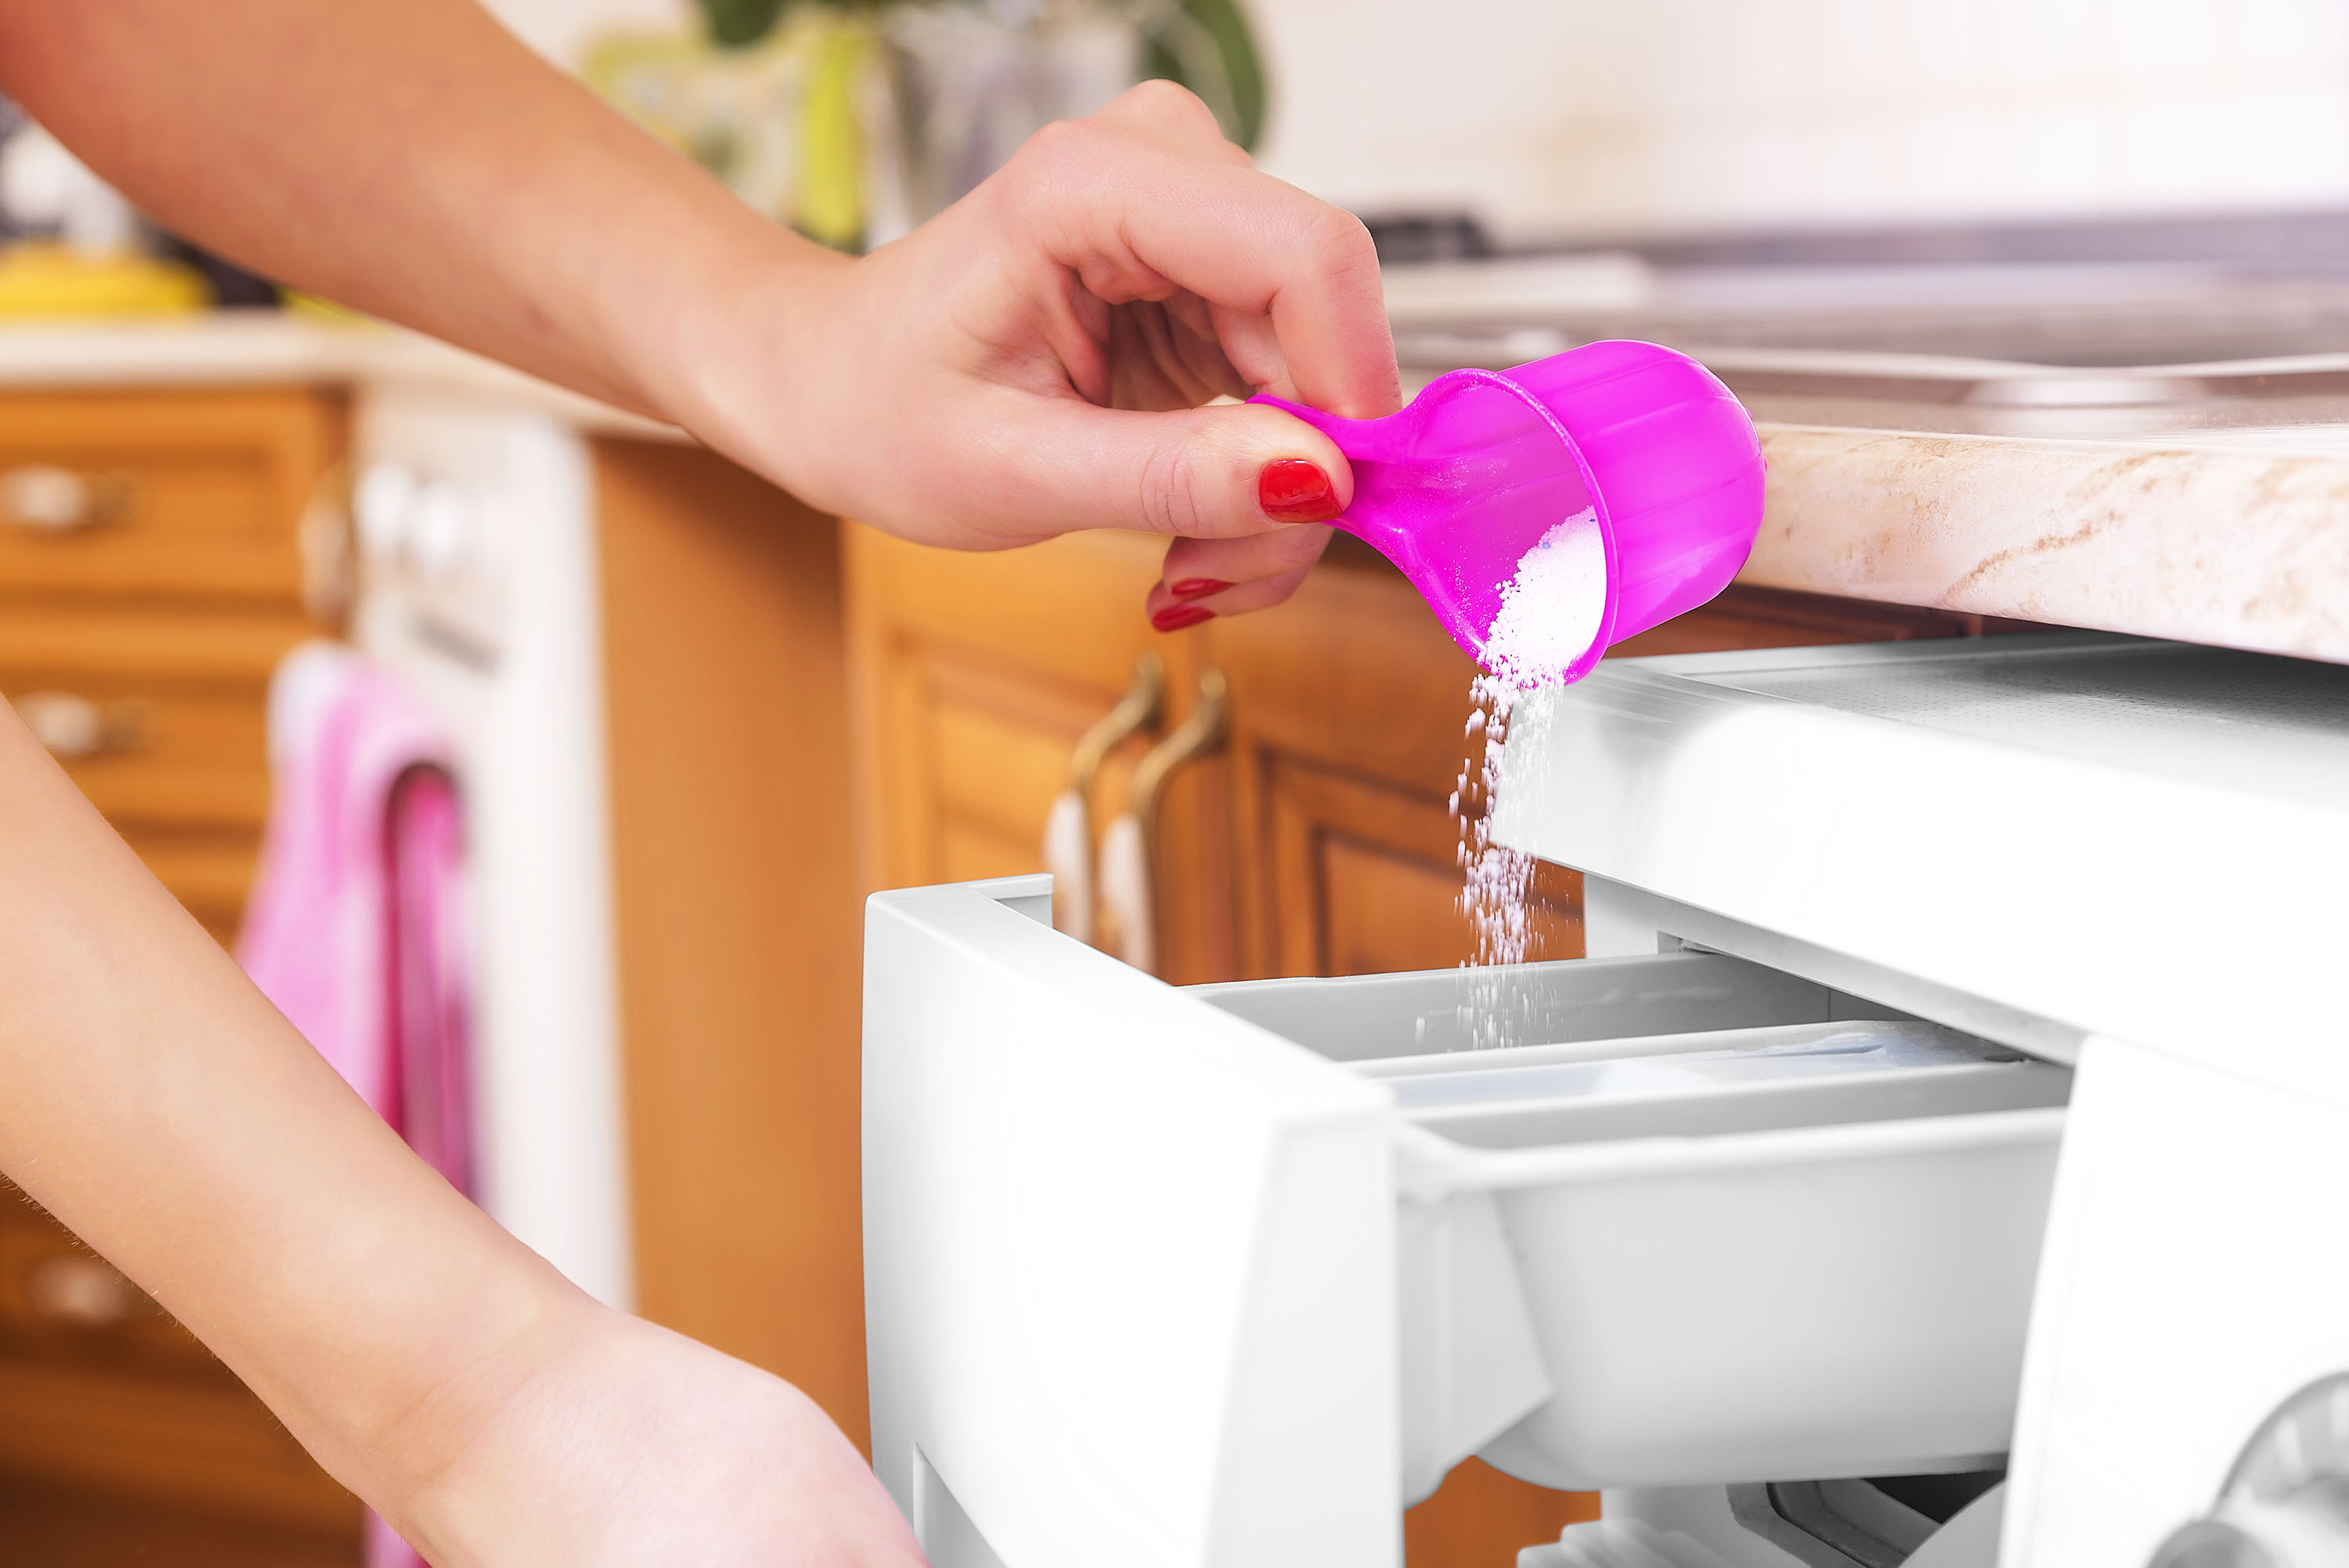 5 Things You Shouldn't Be Doing When You Use Laundry Detergent